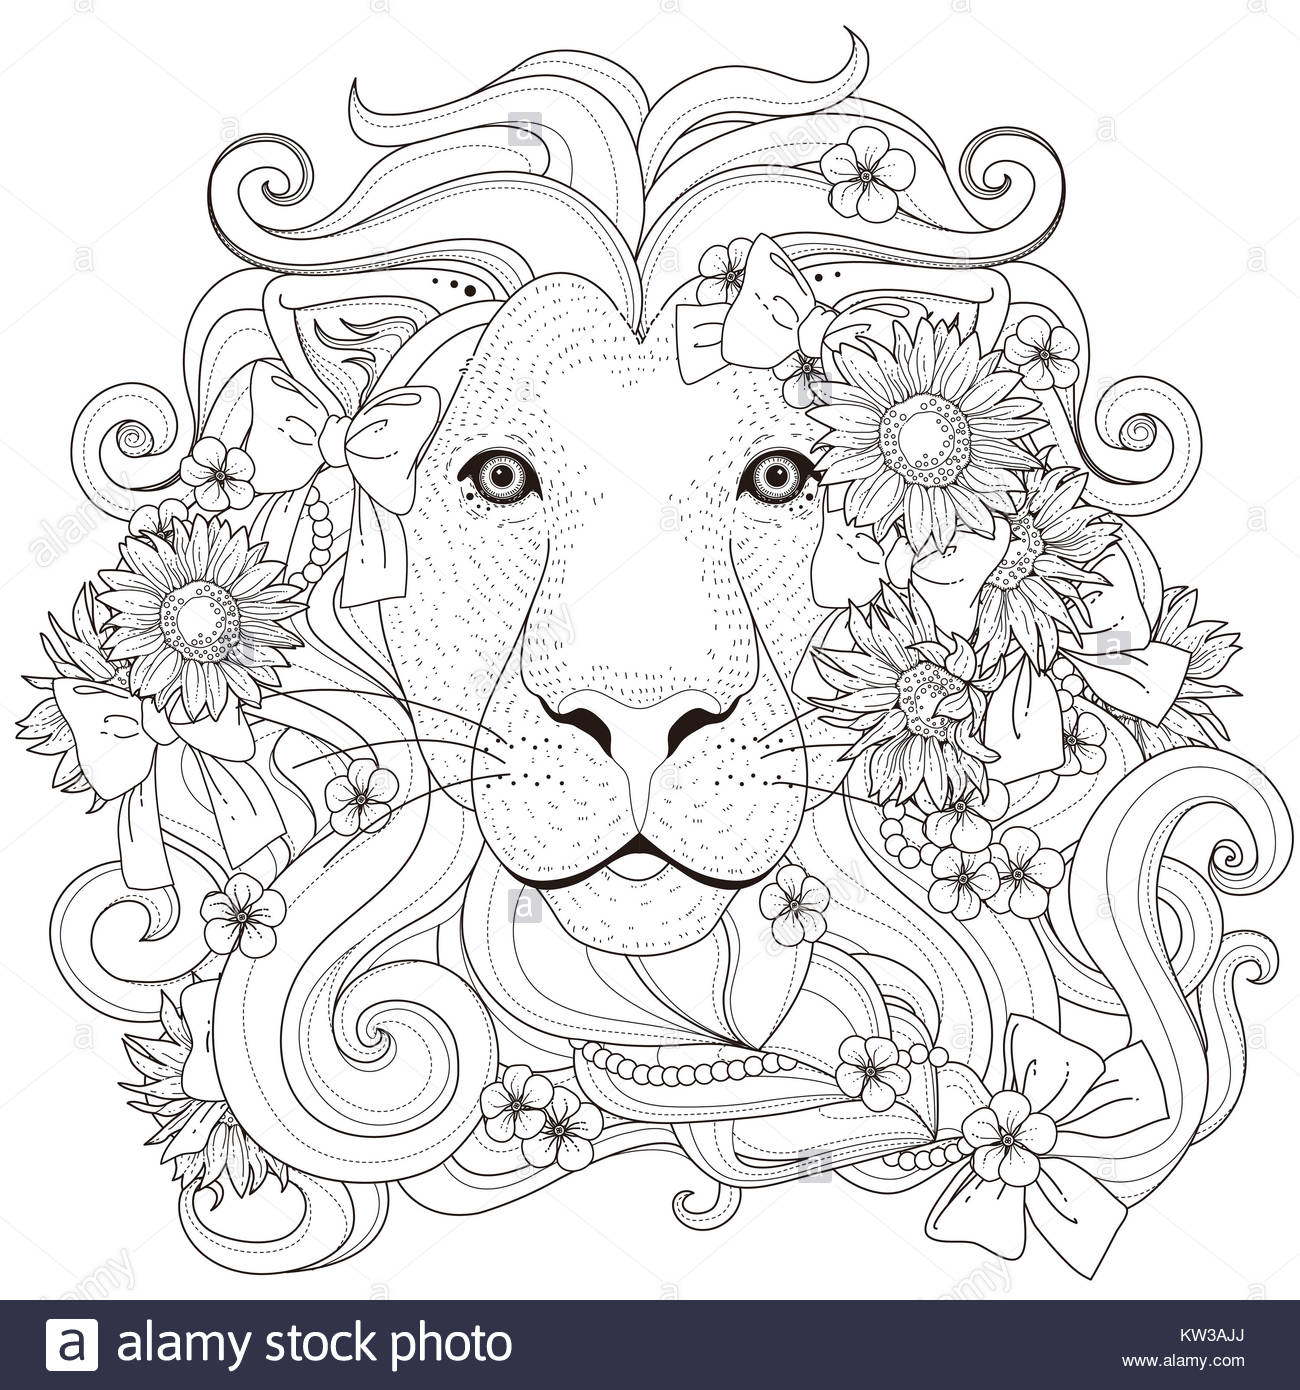 lovely lion with flowers coloring page in exquisite style Stock ...